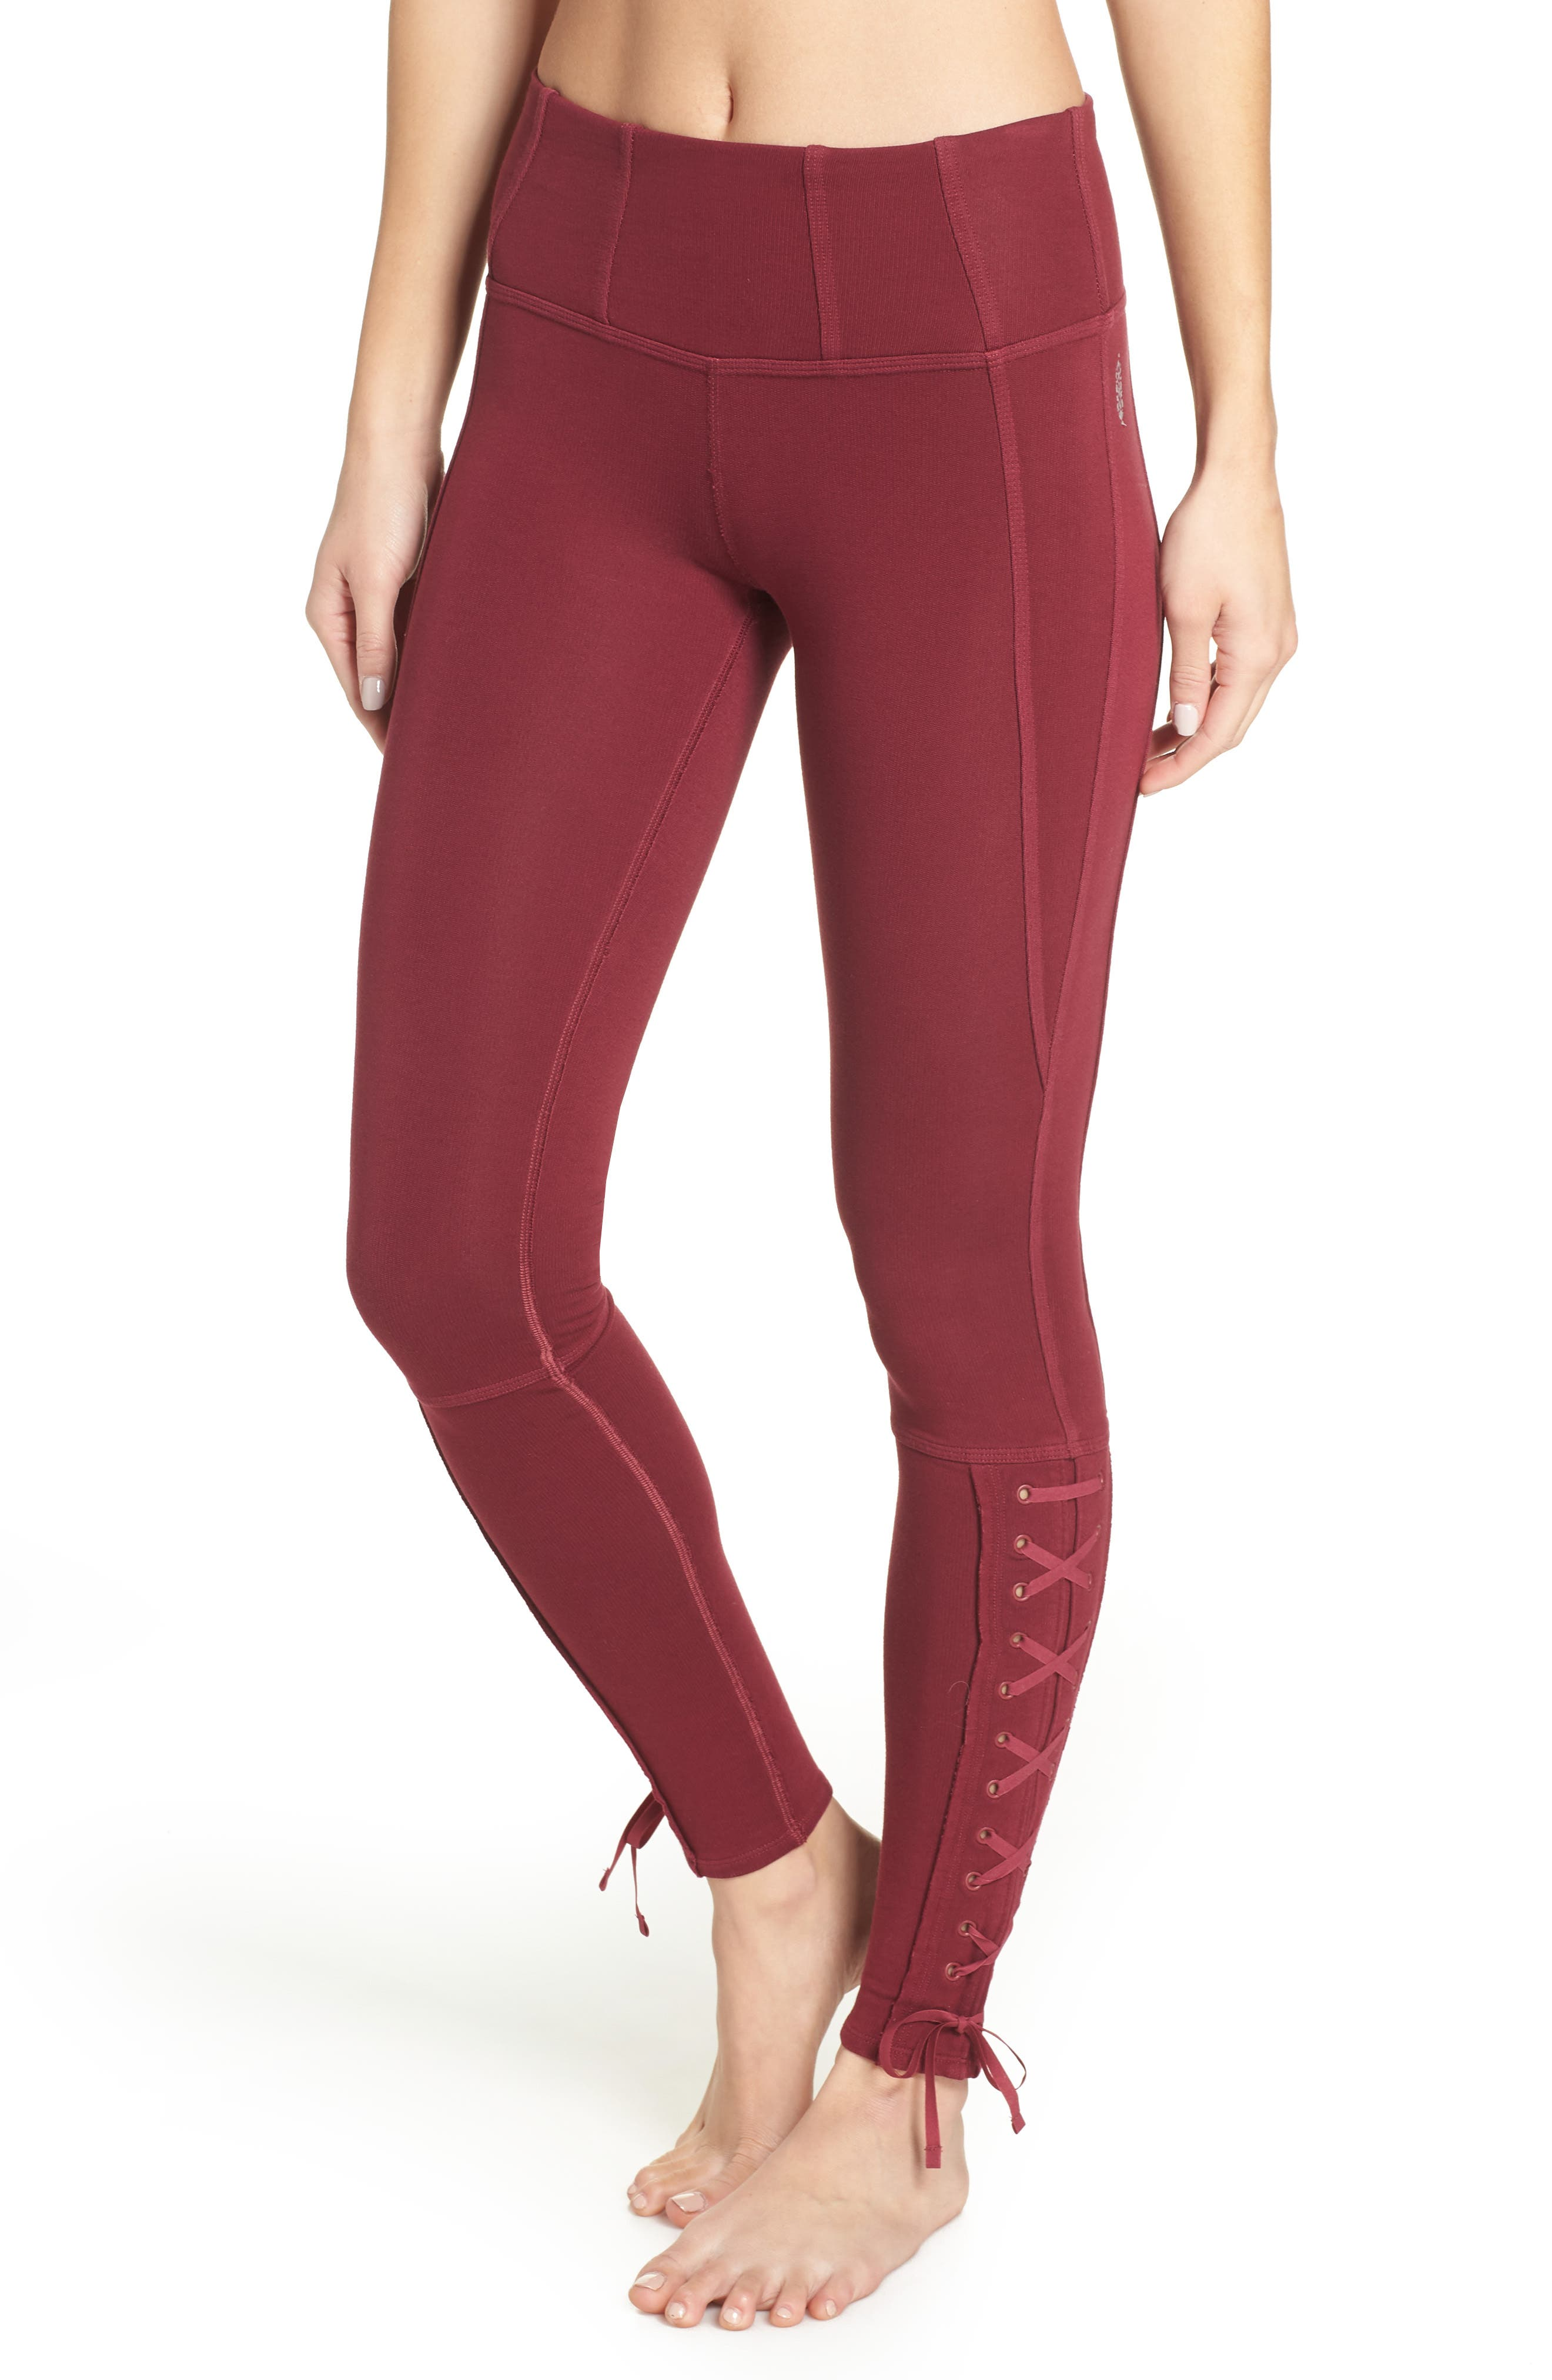 Free People Fp Movement Pixi Lace-Up Leggings, Red